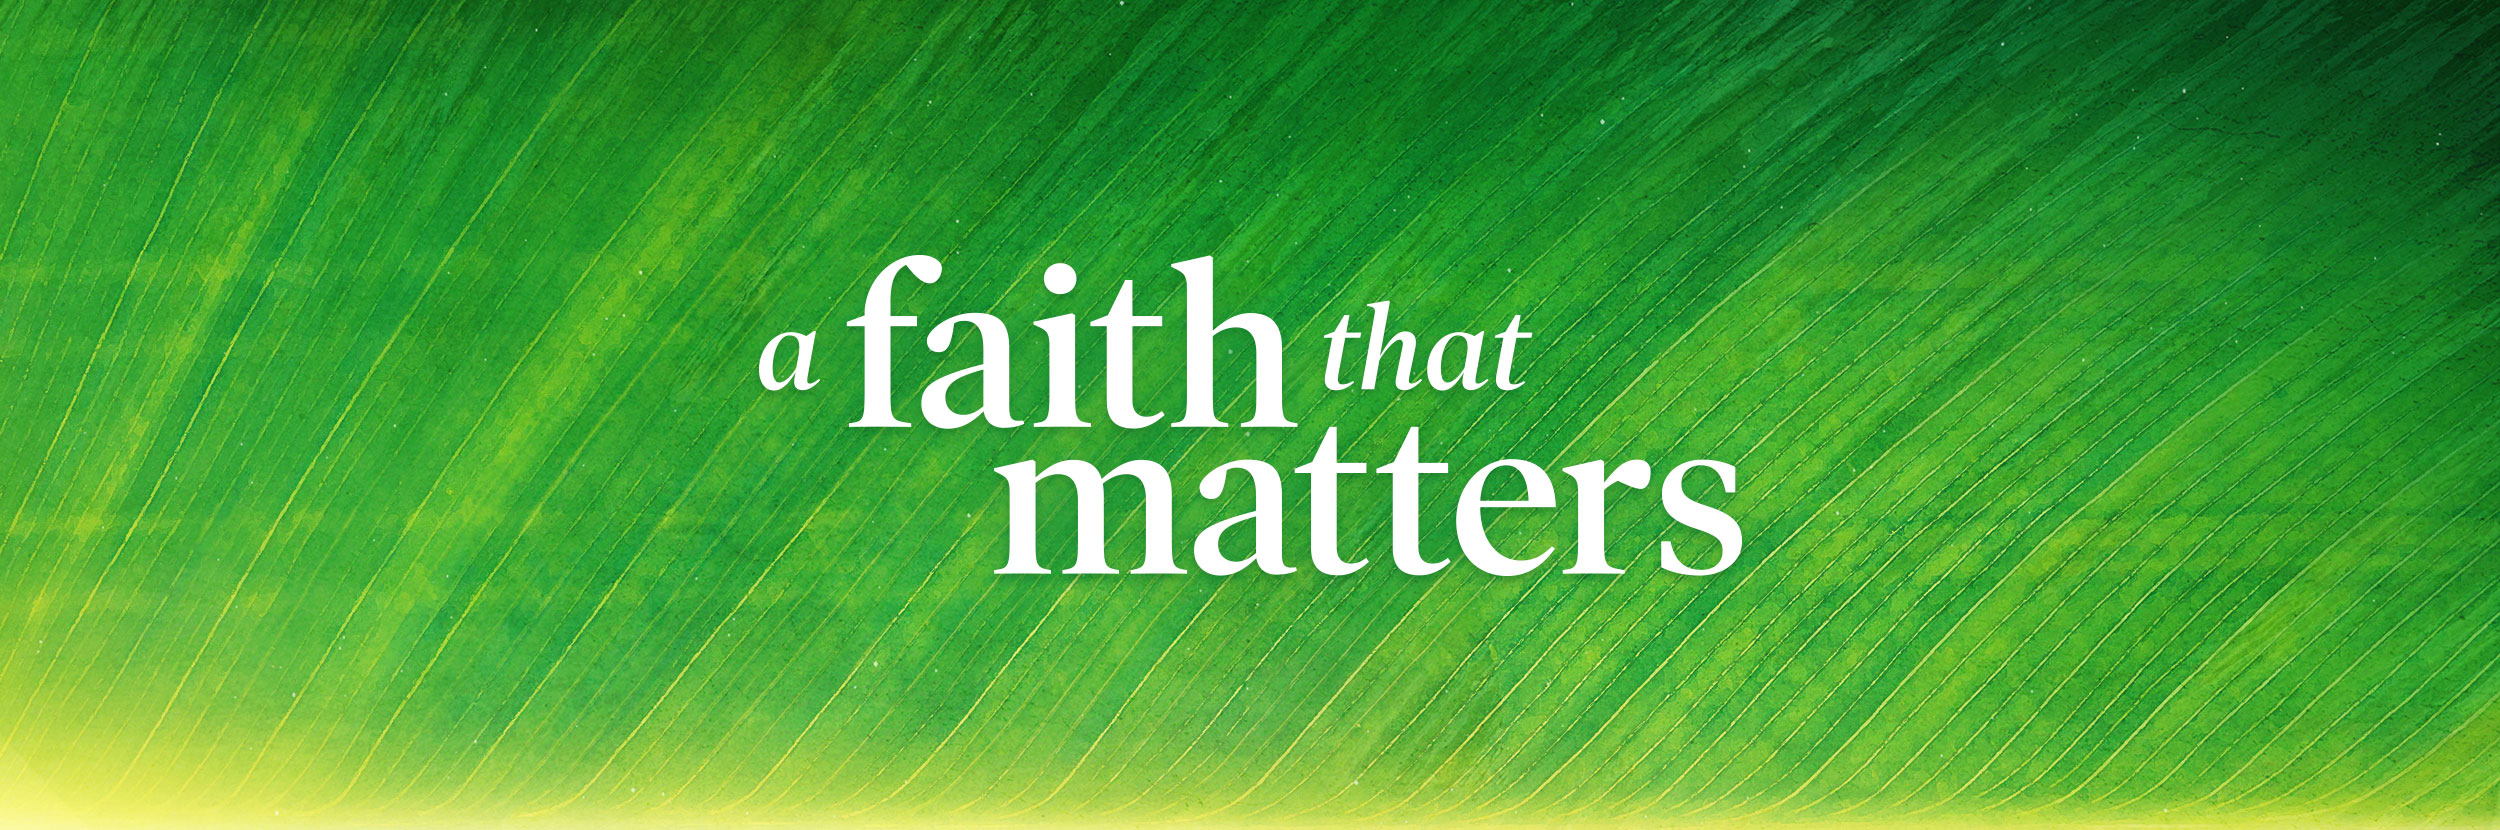 a-faith-that-matters-banner-2500x830.jpg